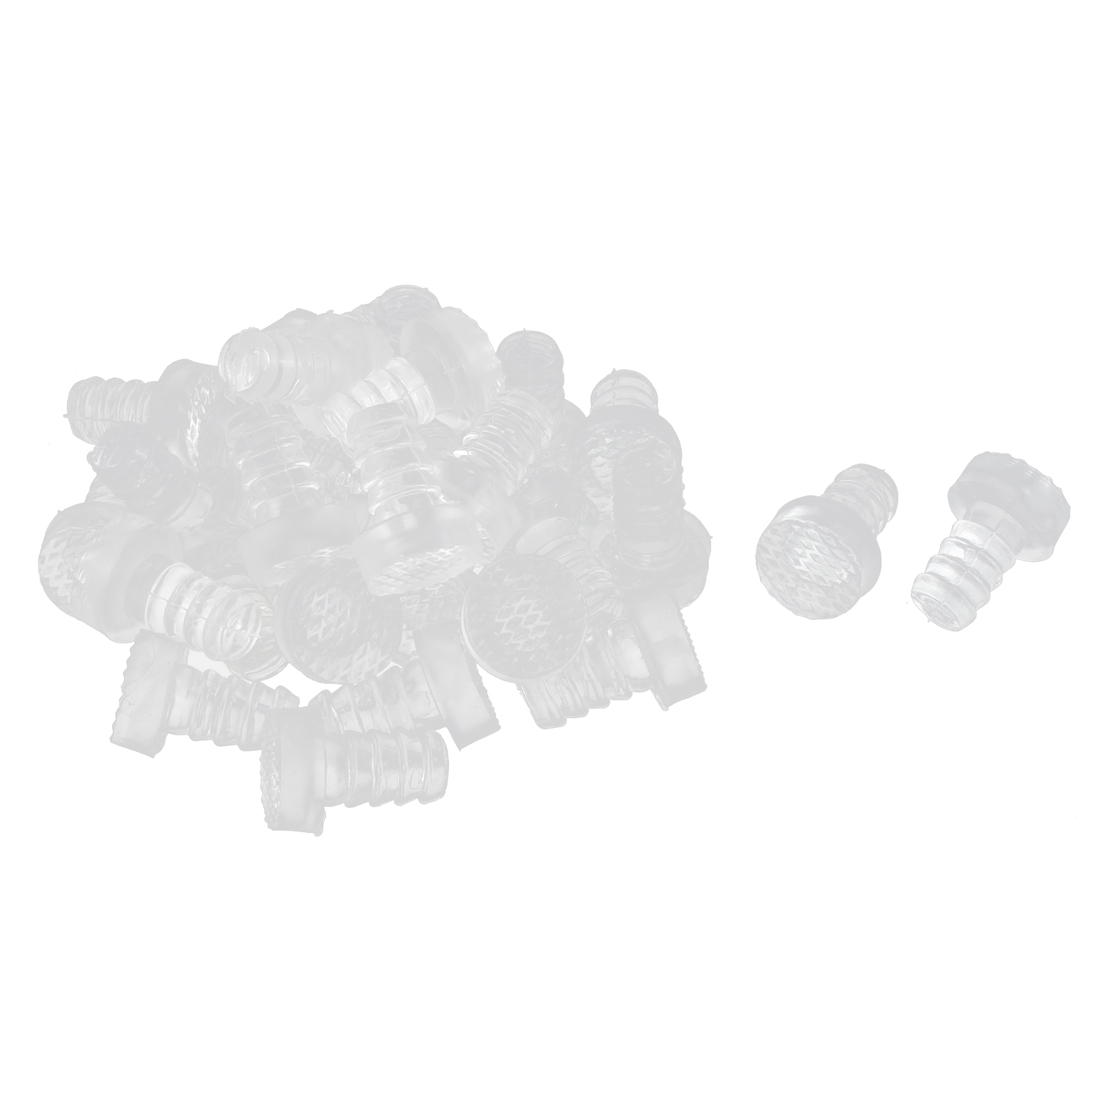 Furniture Feet Plastic Anticollision Tube Inserts 9mm Thread Dia 30pcs